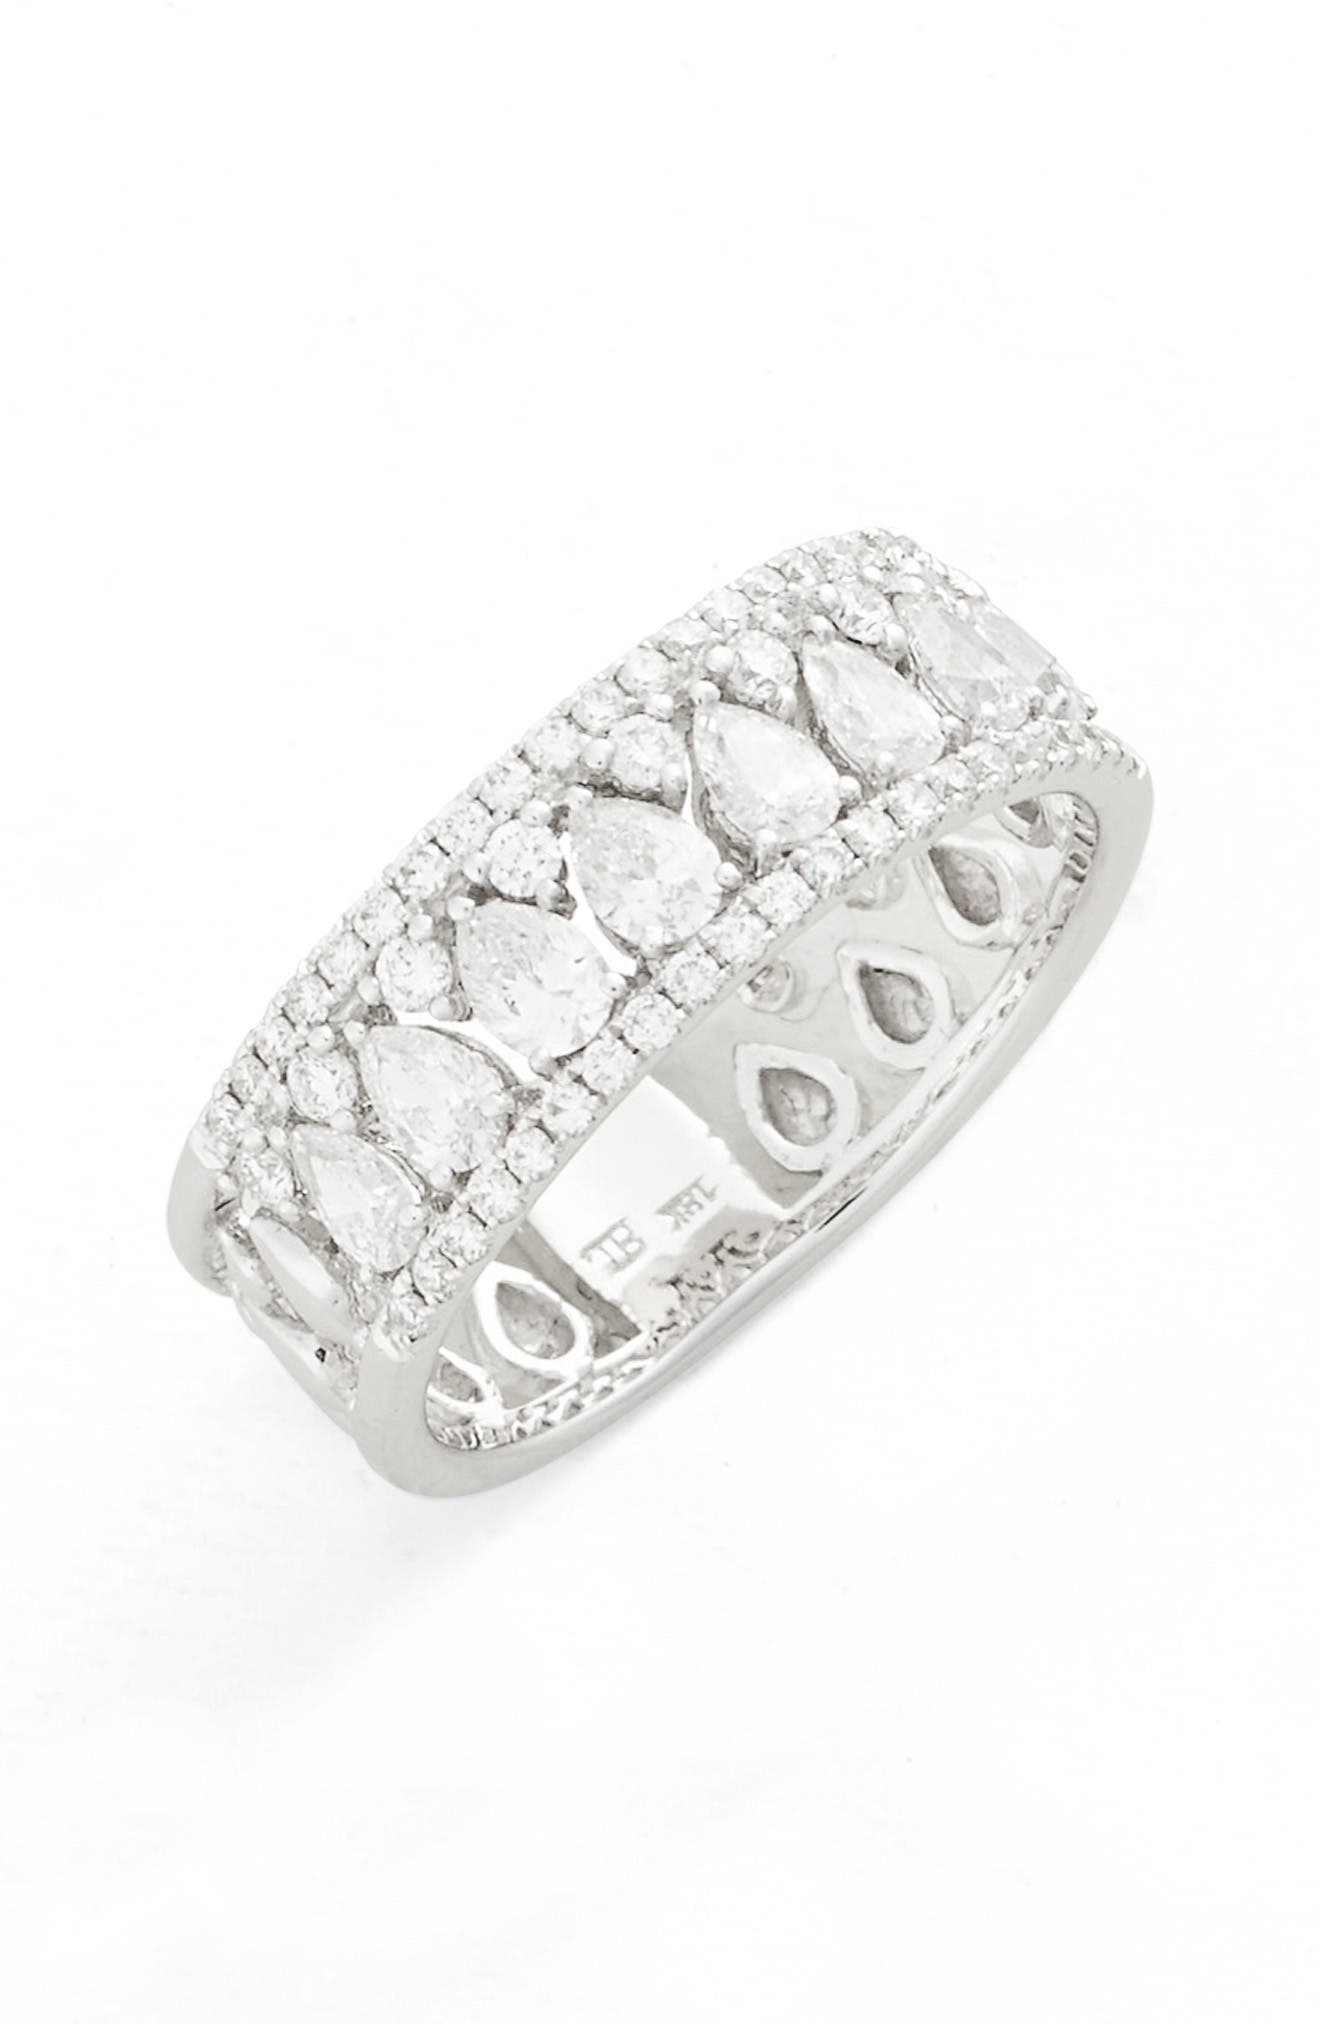 Main Image - Bony Levy Liora Diamond Mixed Cut Band Ring (Nordstrom Exclusive)